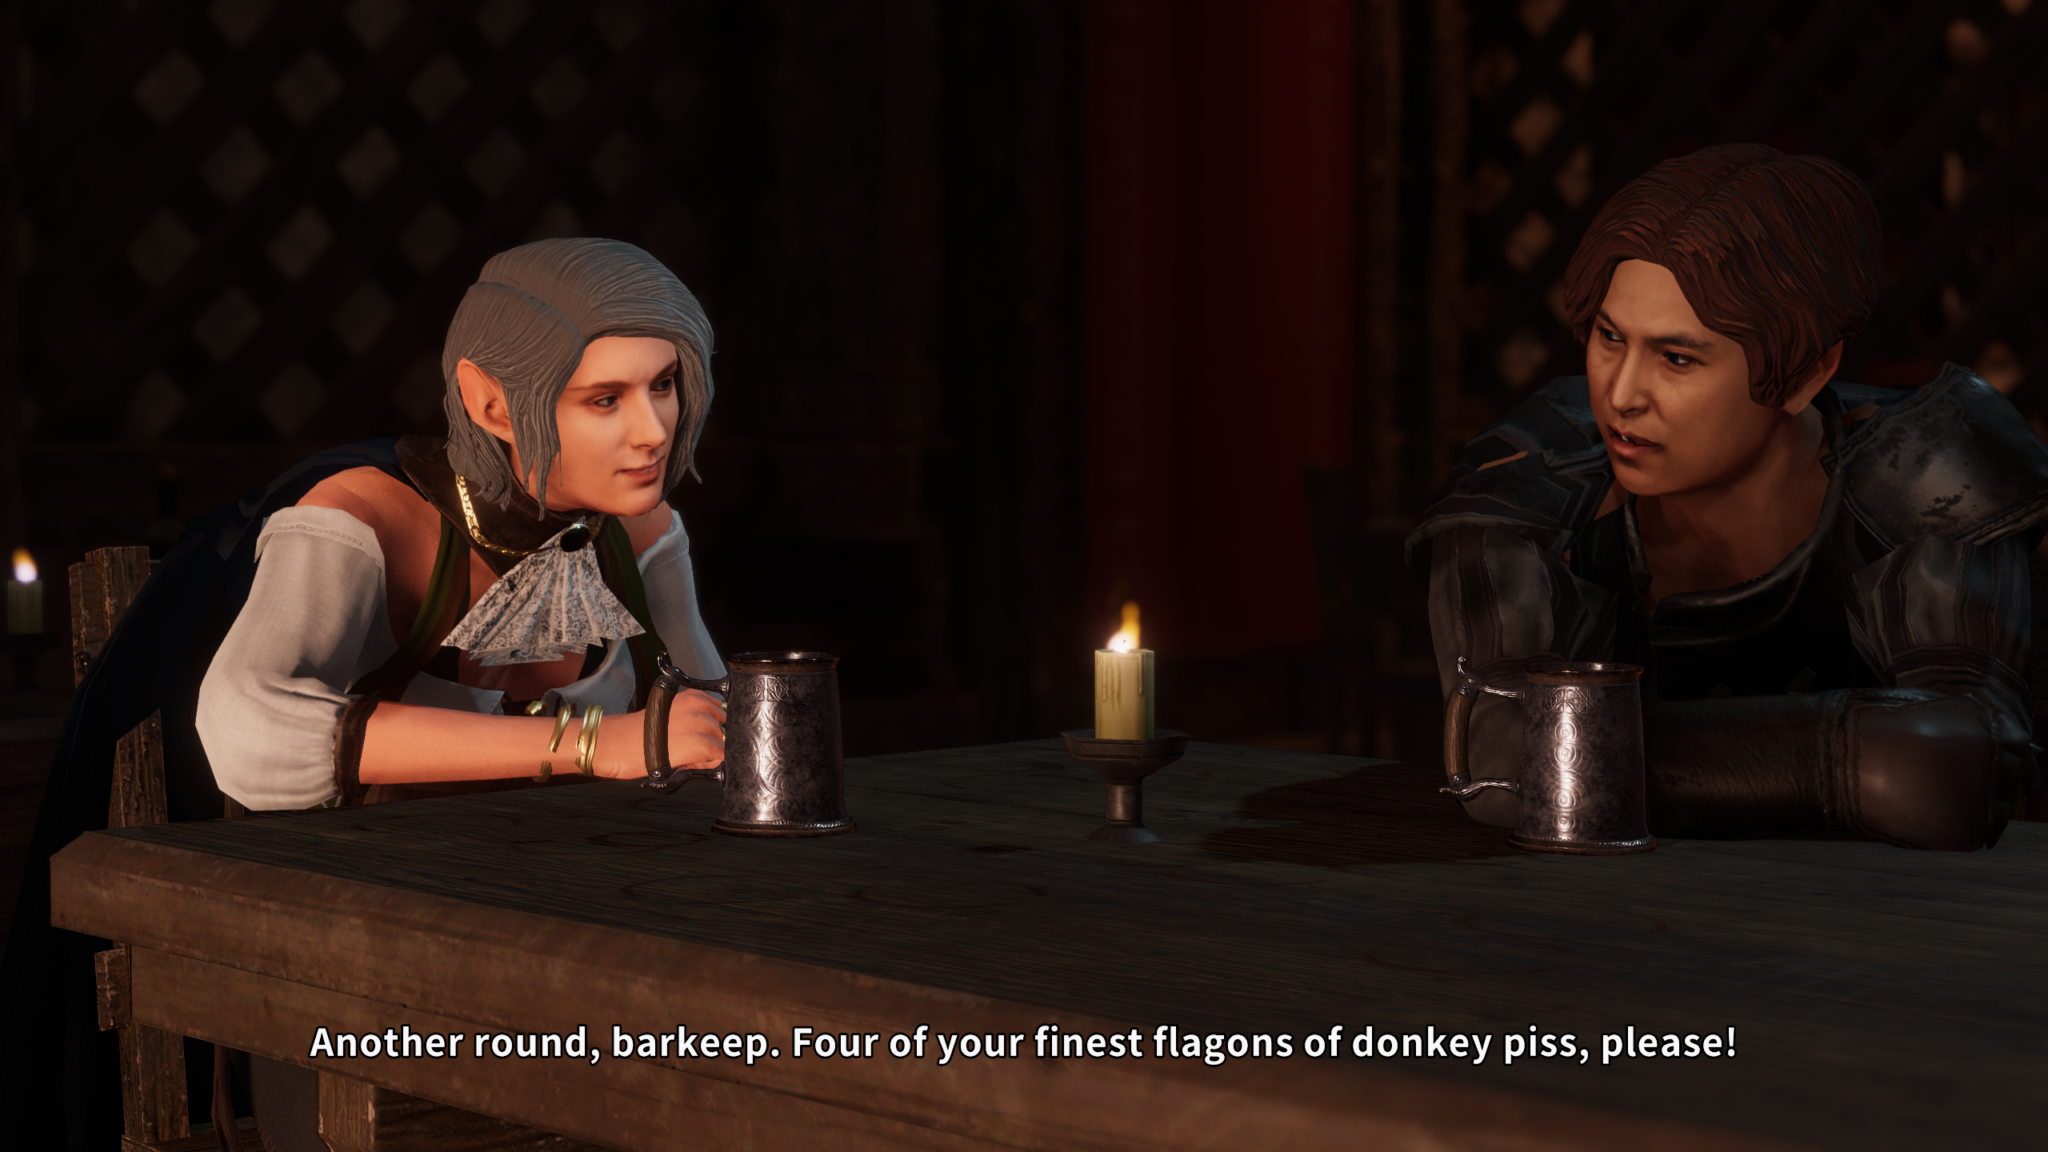 Two Solasta characters in a tavern